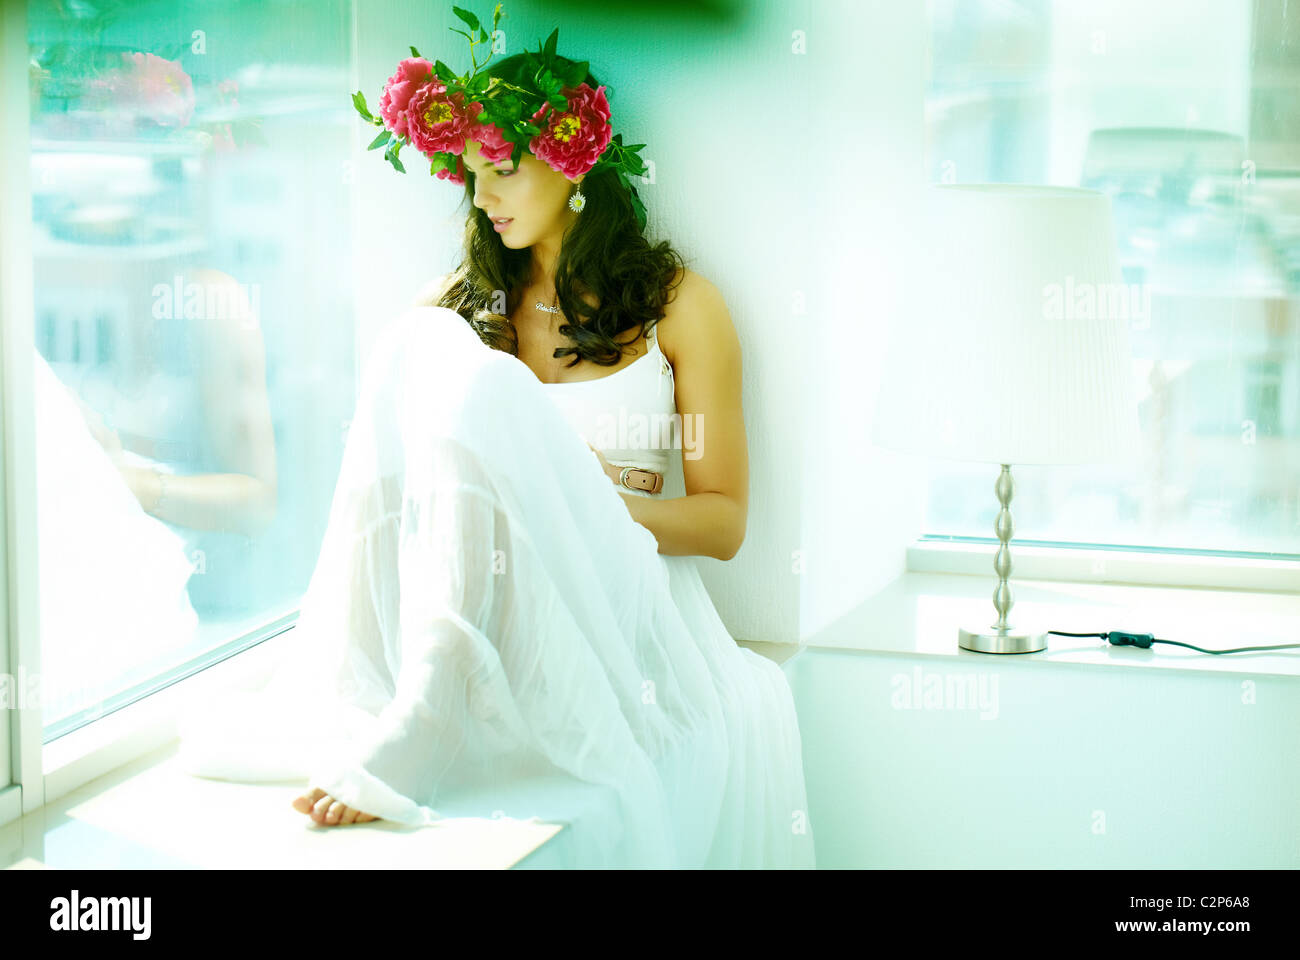 Beautiful woman in white dress sitting on window sill and looking through glass Stock Photo